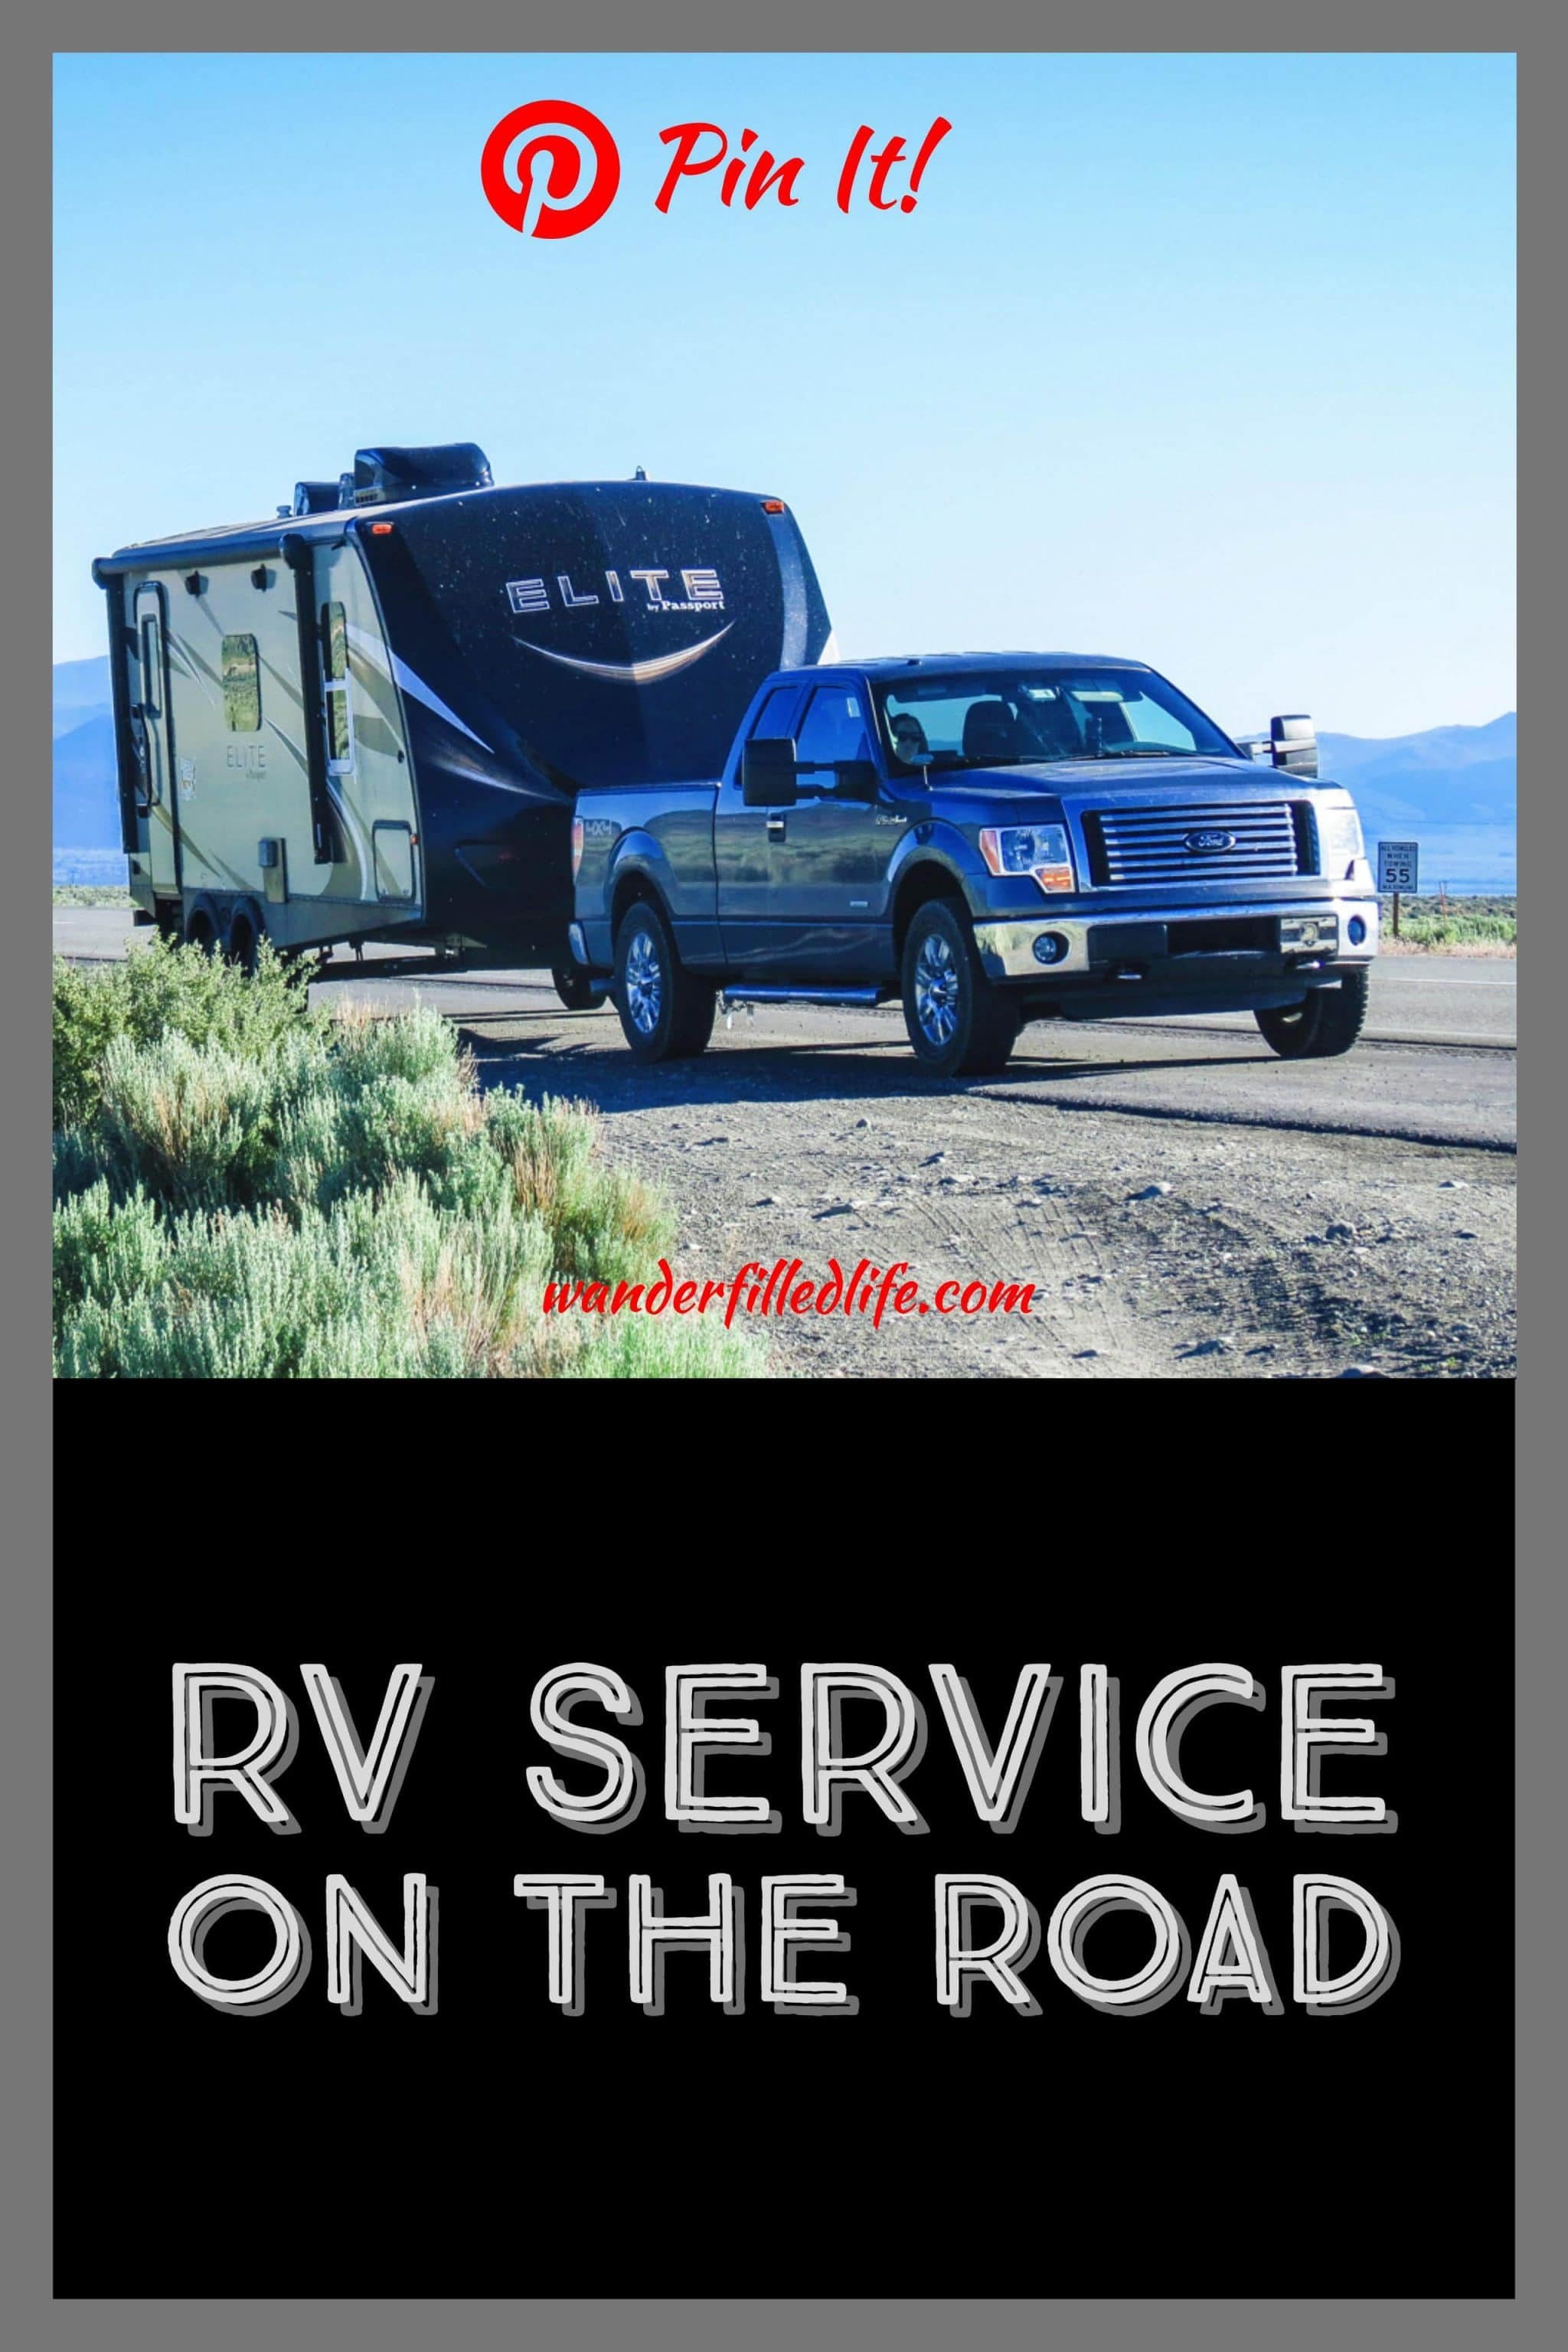 Sometimes, finding anyone who can provide RV service in less than two weeks can be a challenge. Here's our first experience in finding service on the road.